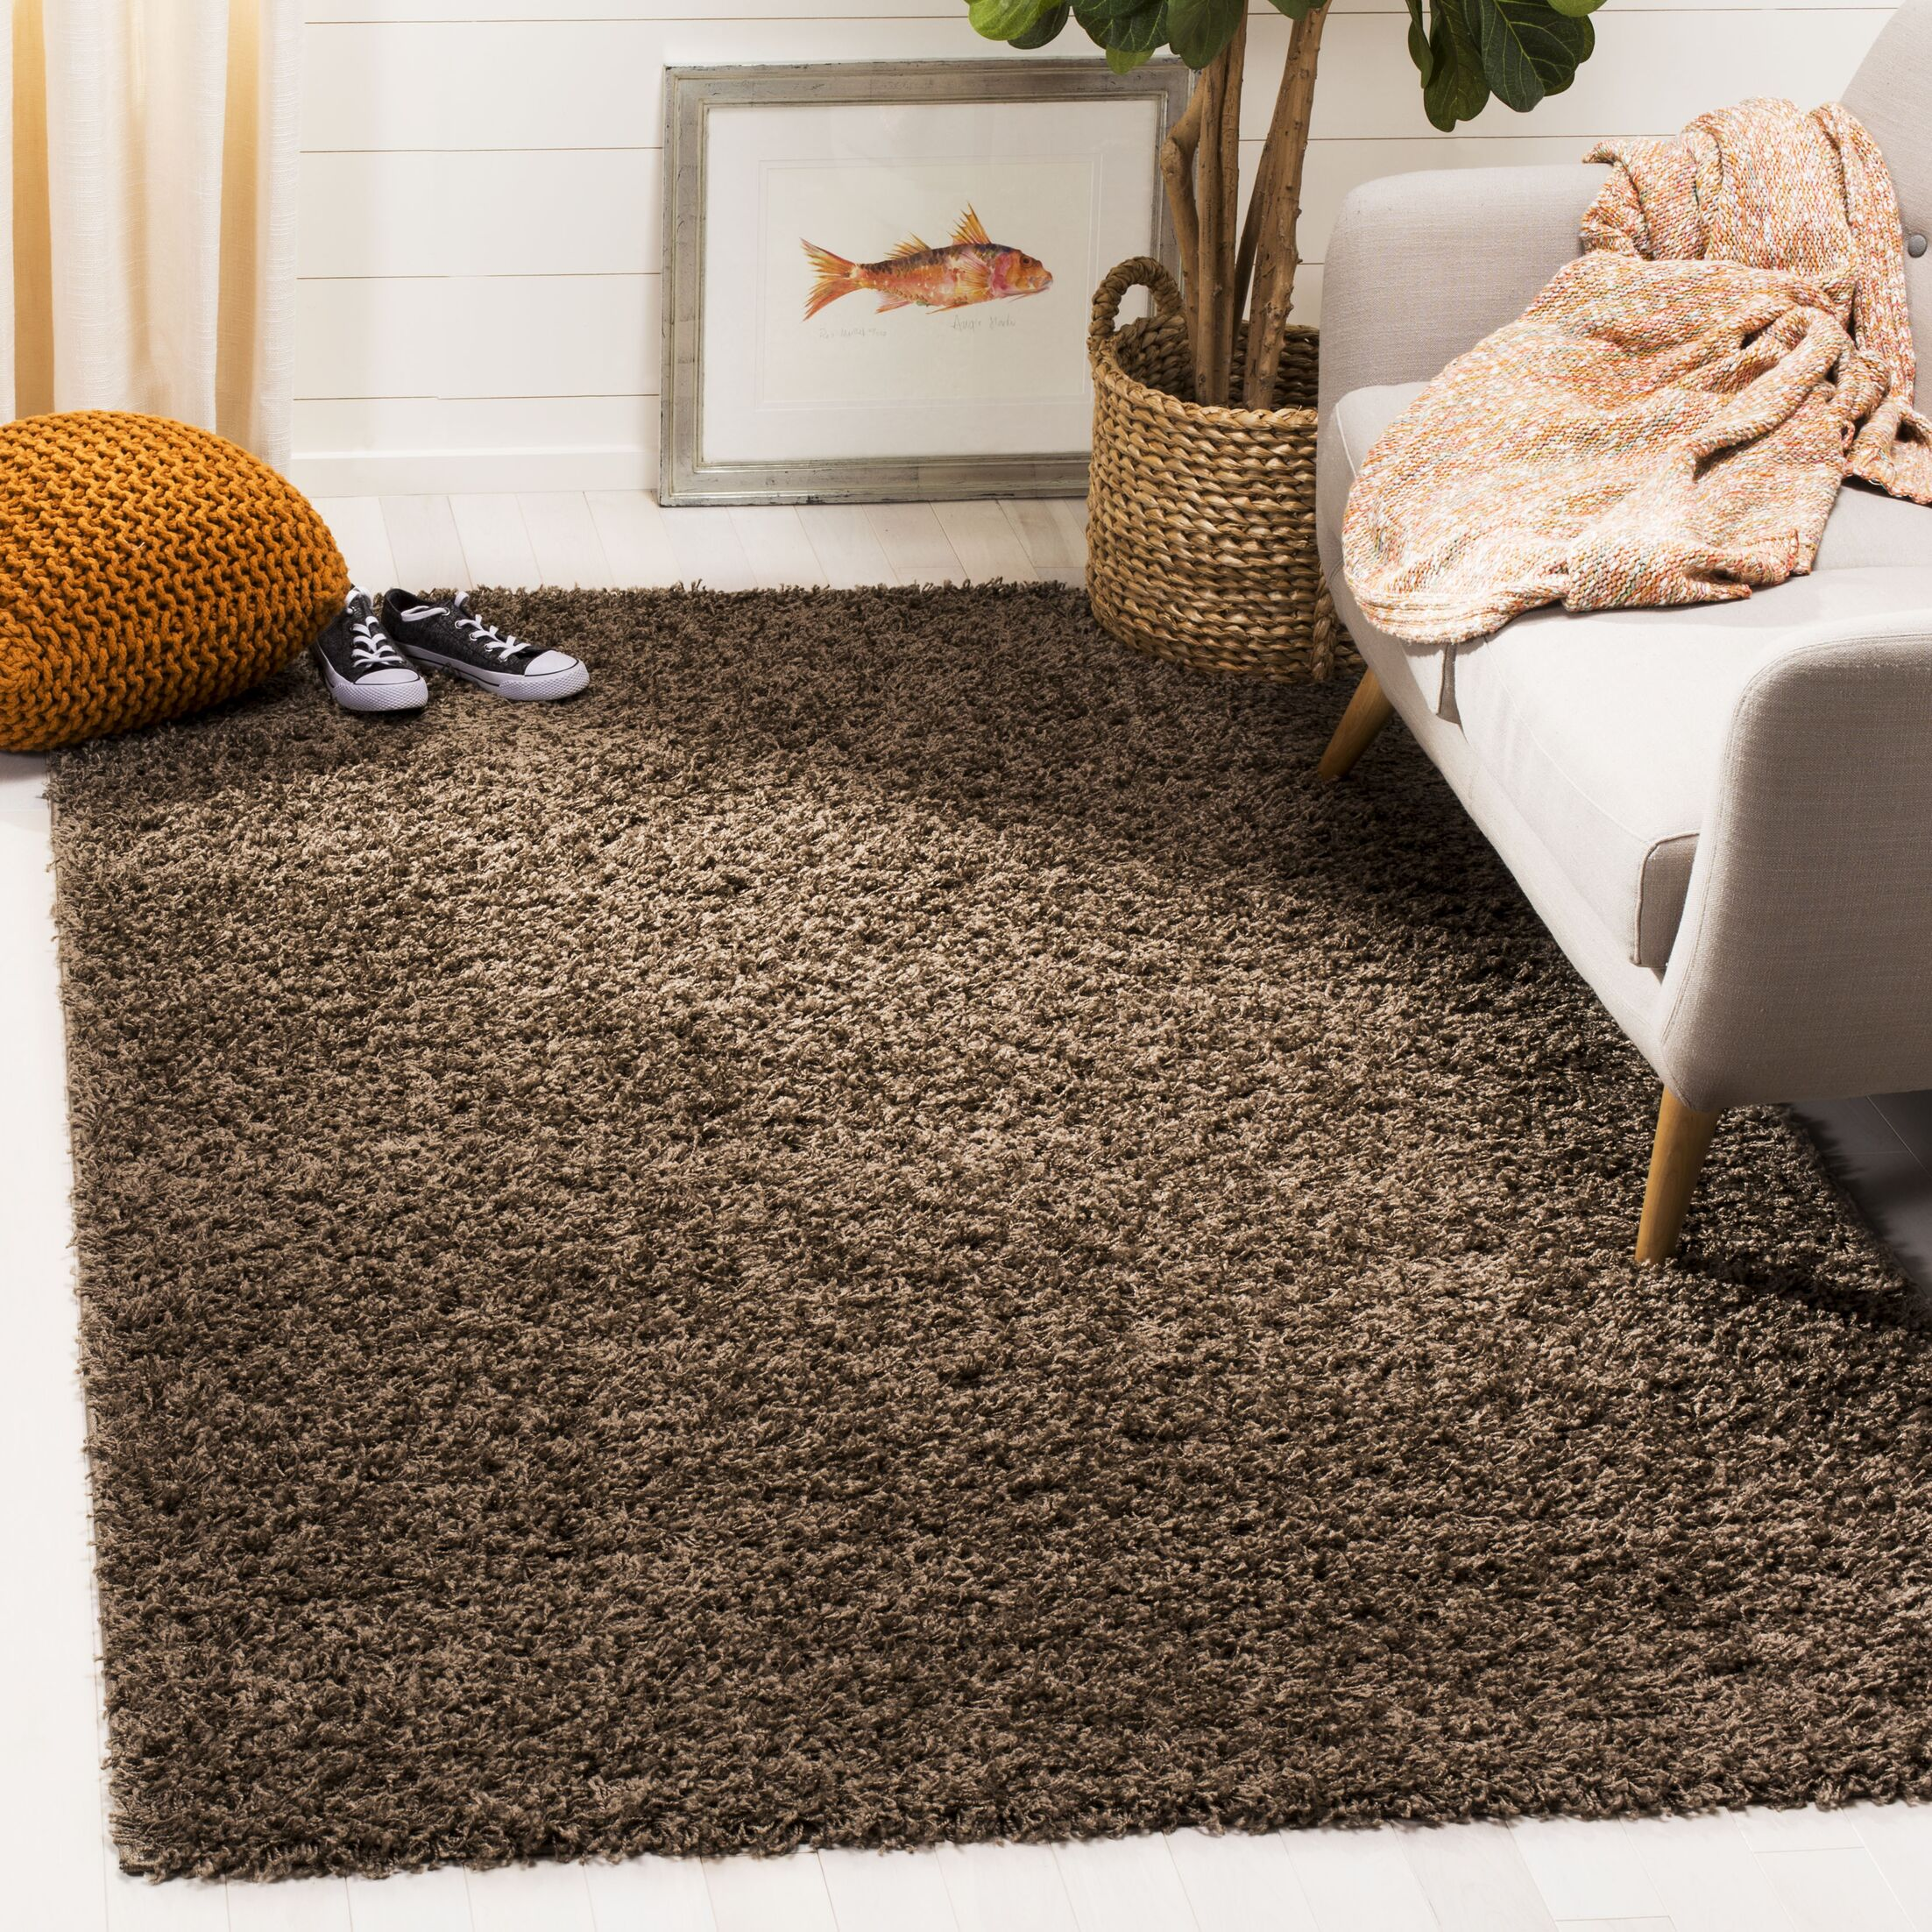 Fornax Shag Brown Area Rug Rug Size: Square 6'7